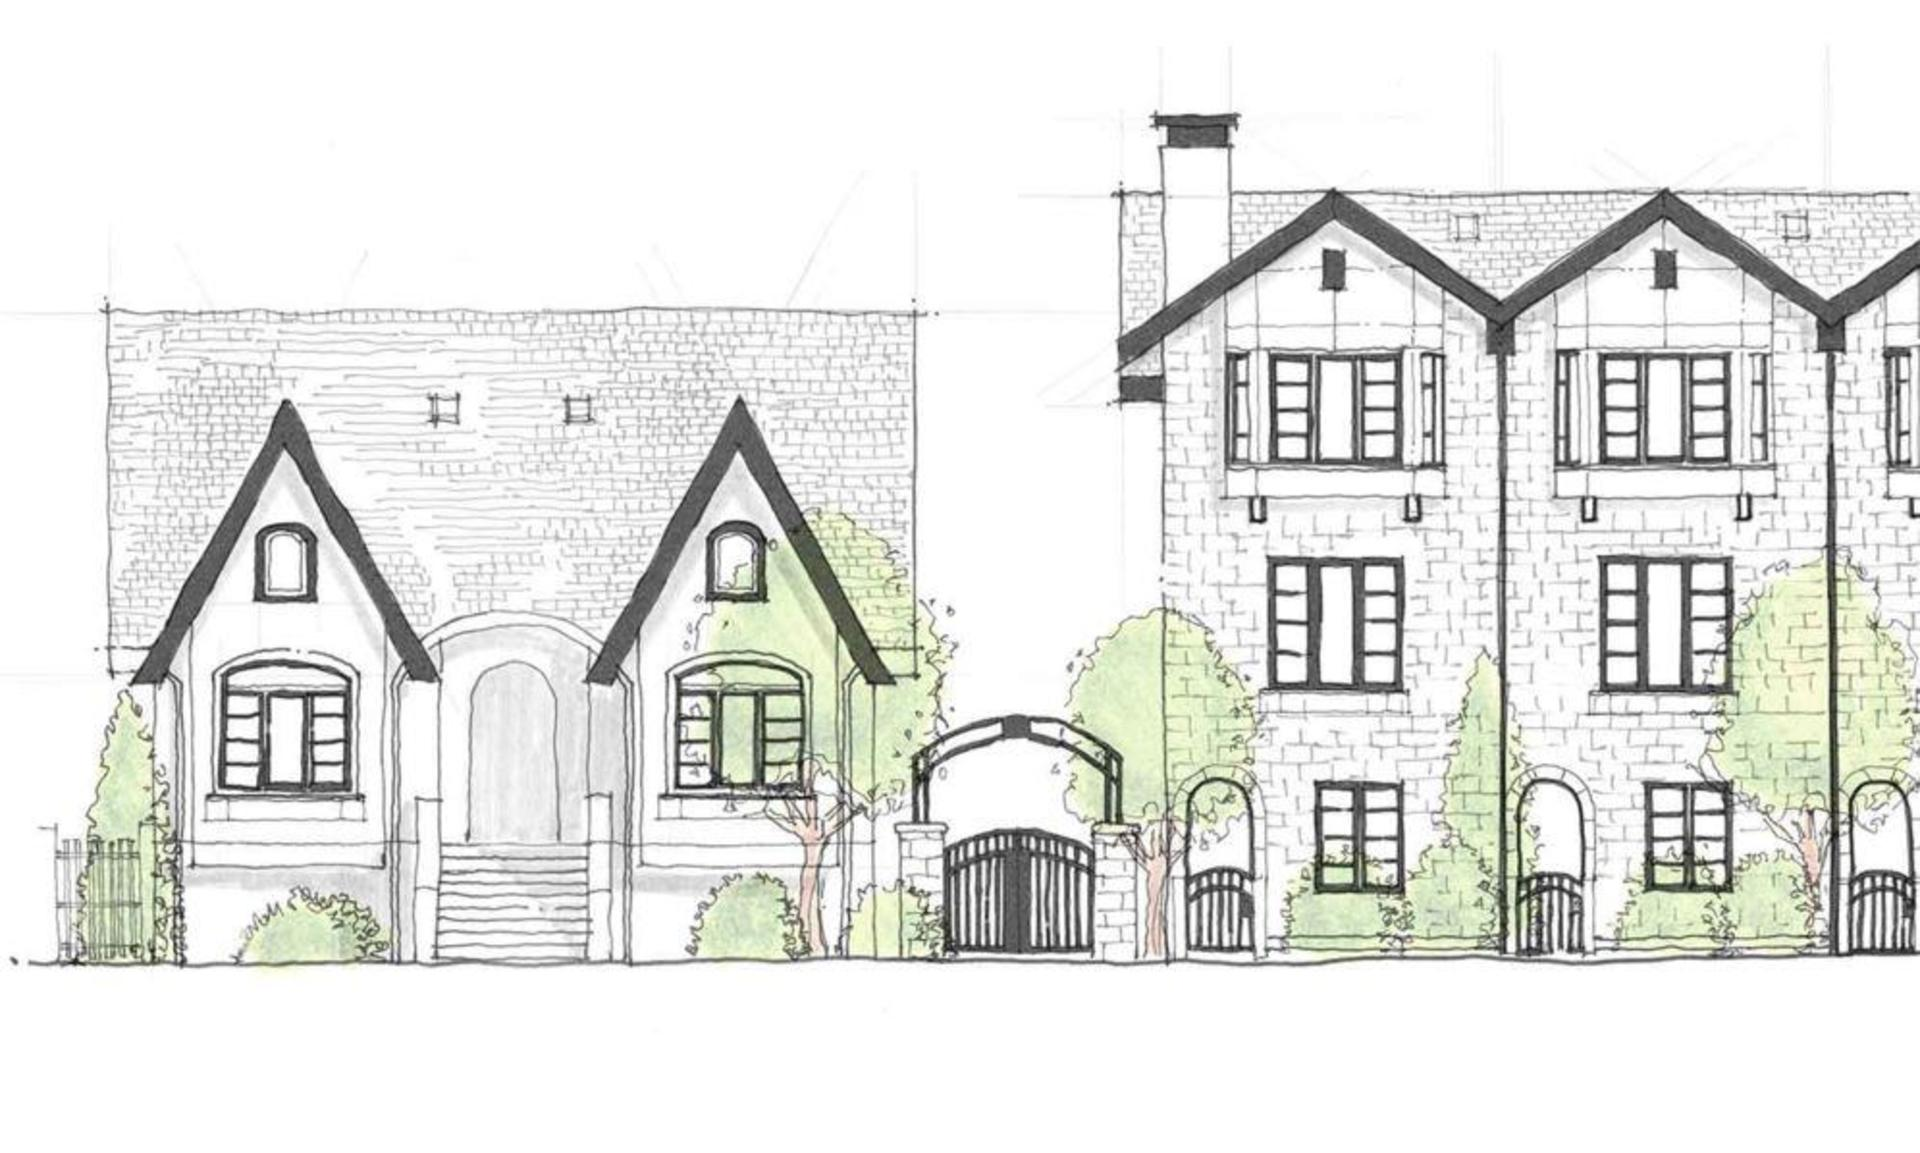 brownstones_sketch at Brownstones at Kingscrest Park (4328 Knight Street, Knight, Vancouver East)